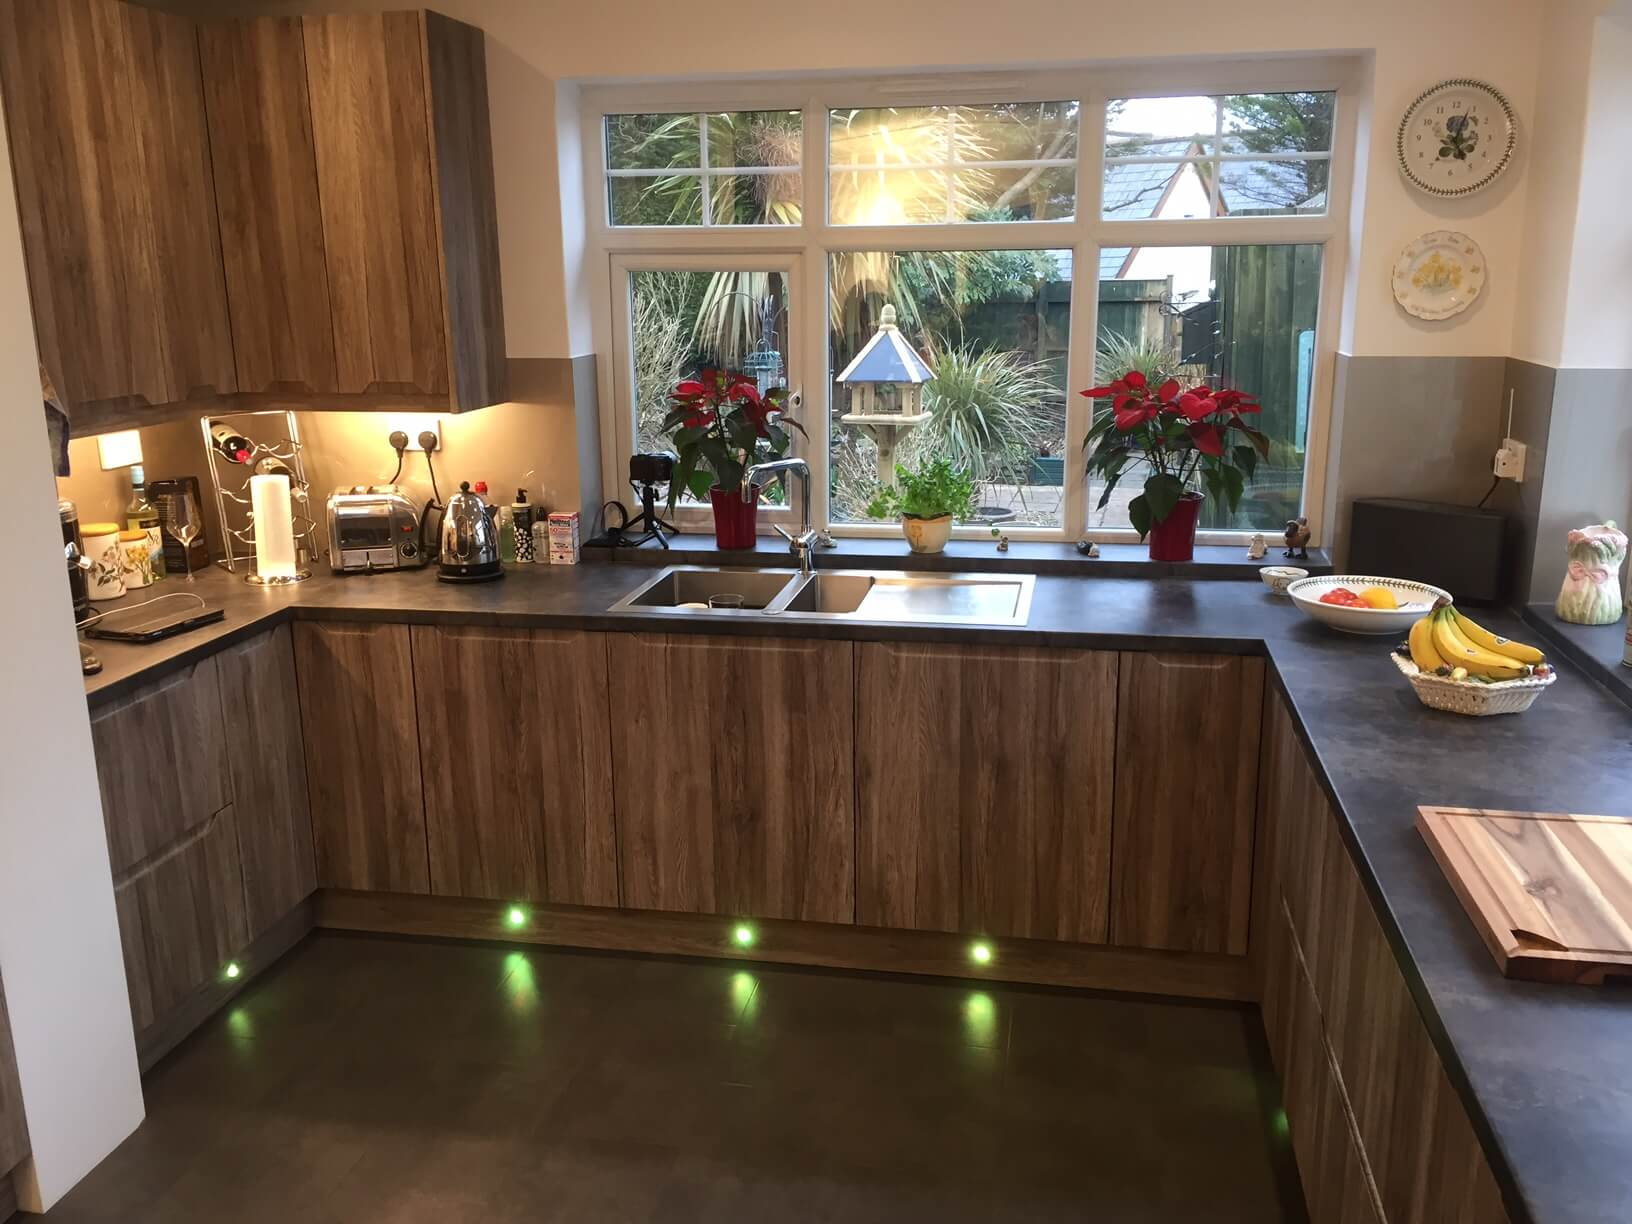 Finished Kitchen with acrylic splash Back and Llghts fitted2